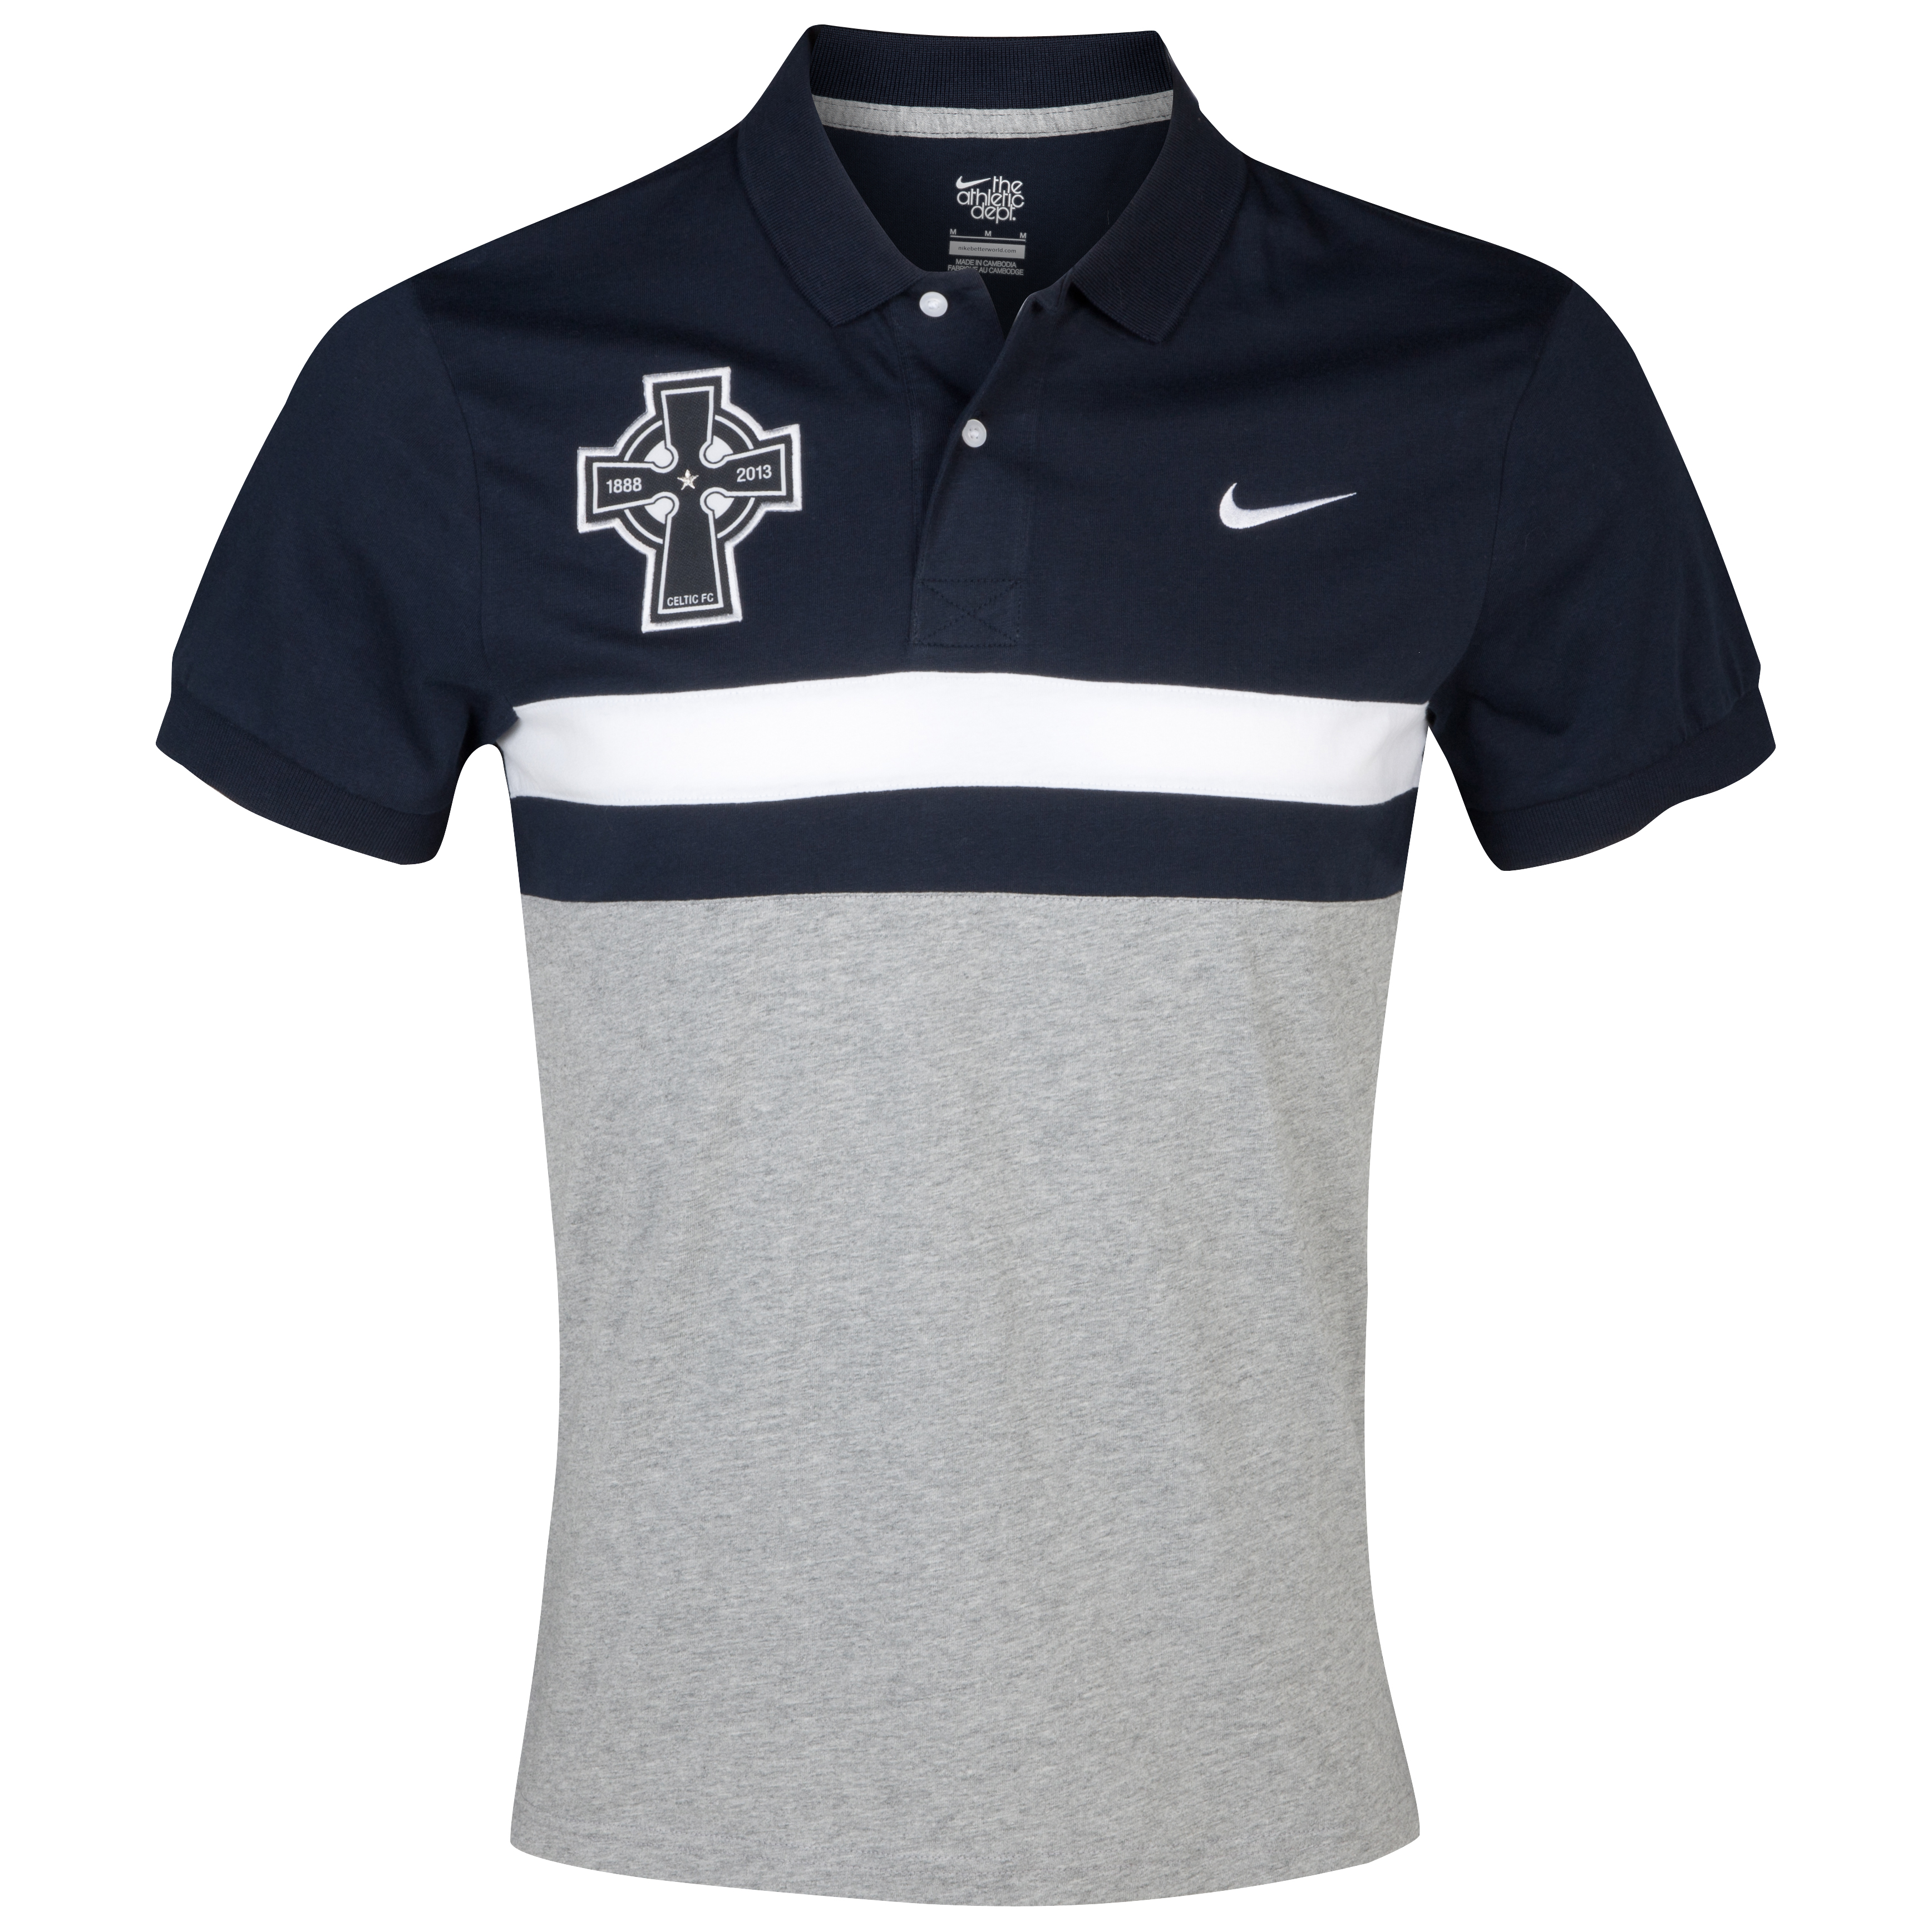 Celtic Contrast Panel Polo - Grey/Black